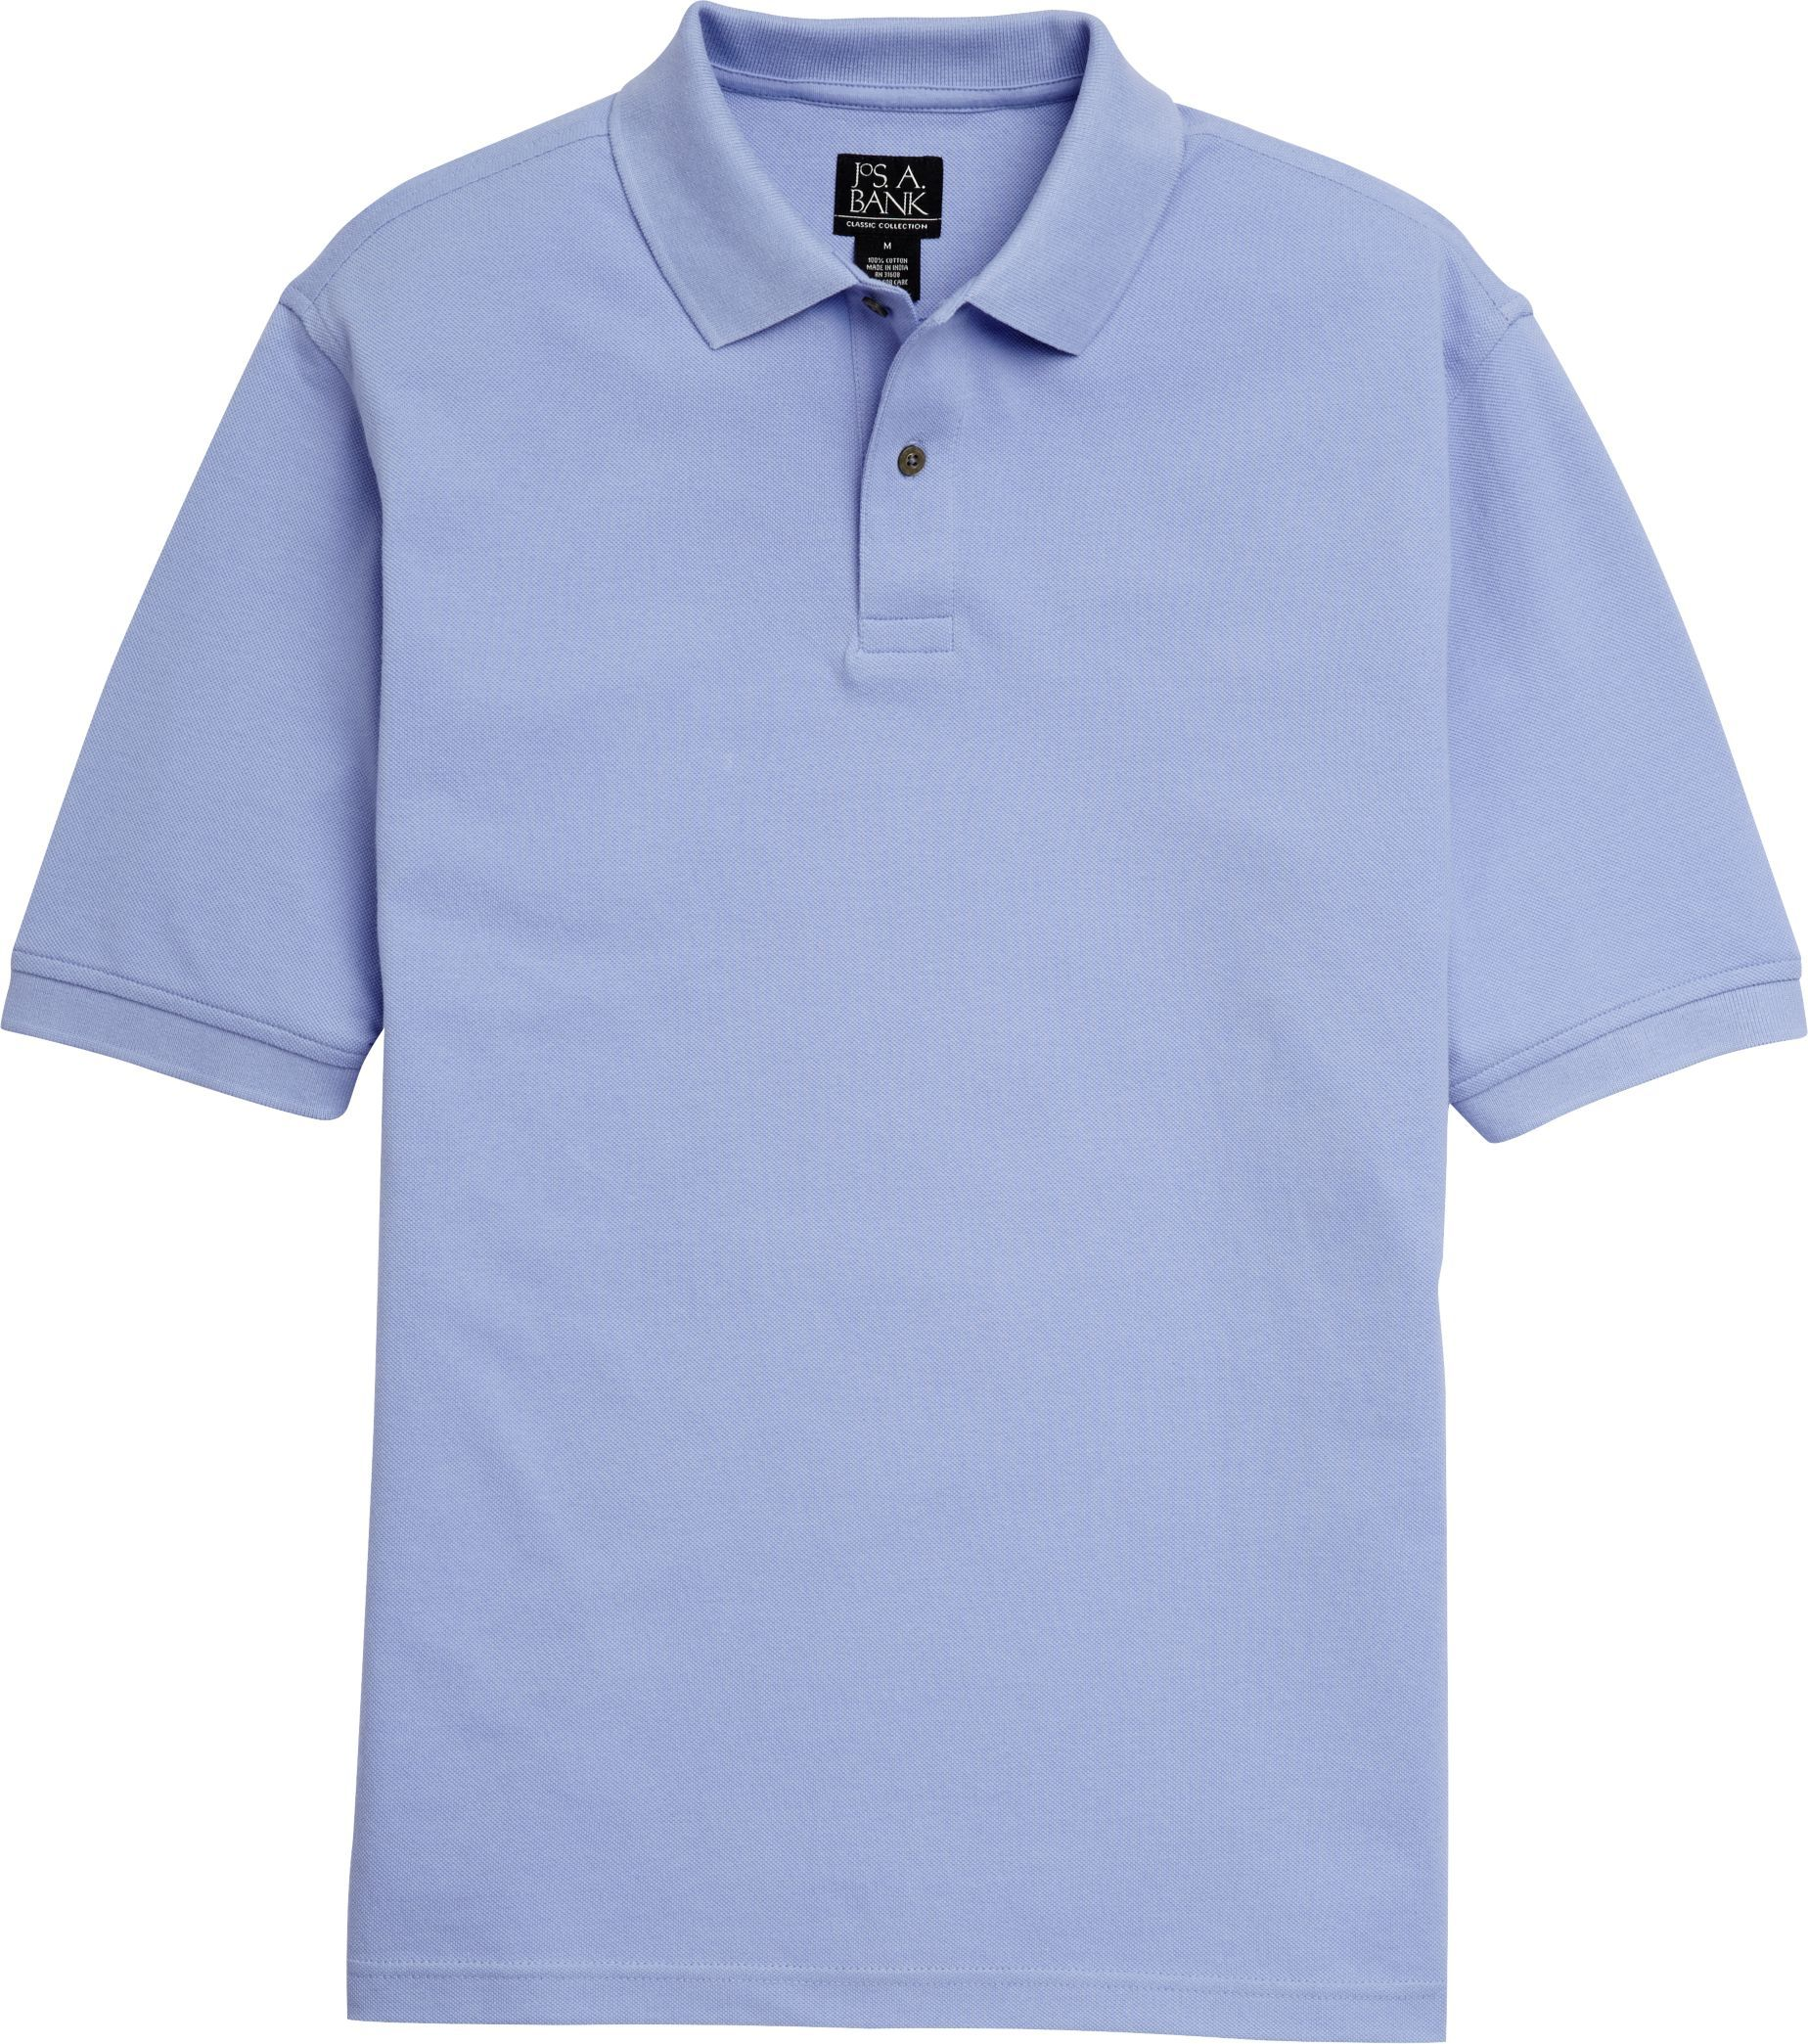 Traditional wedding decor blue and white  Classic Collection Traditional Fit Pique Polo Shirt  Big u Tall